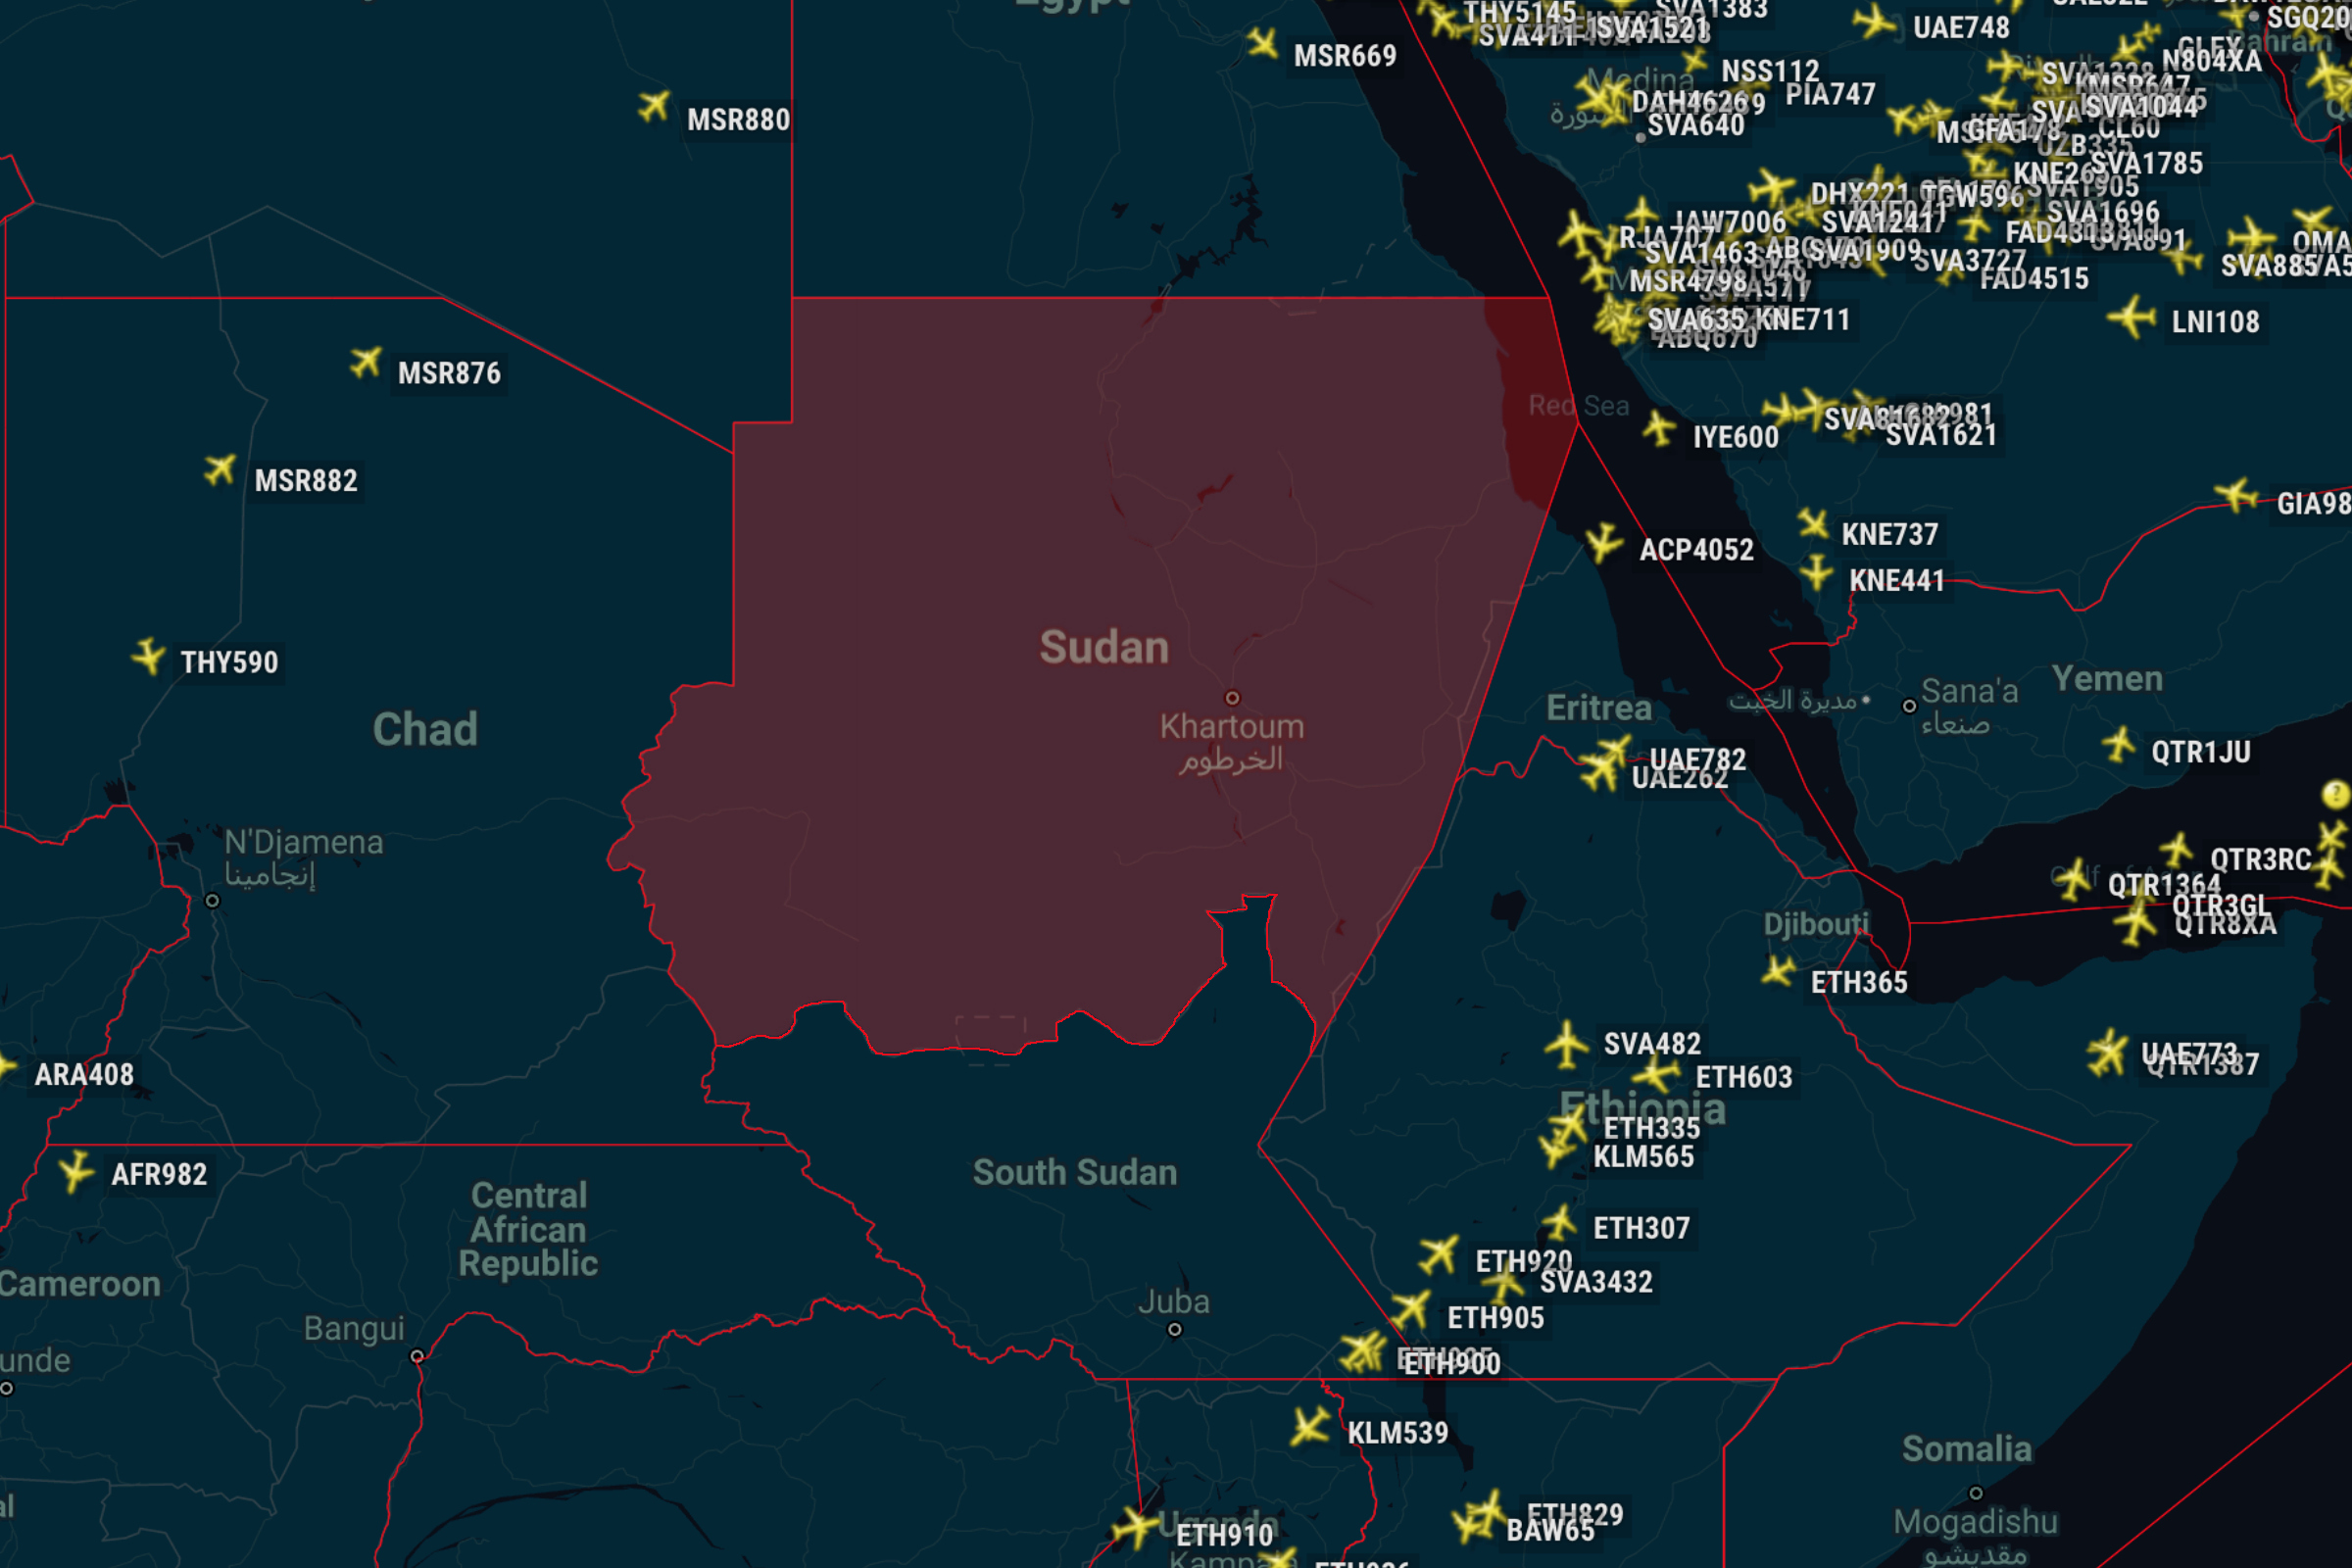 Sudan Airspace Update: A New Risk